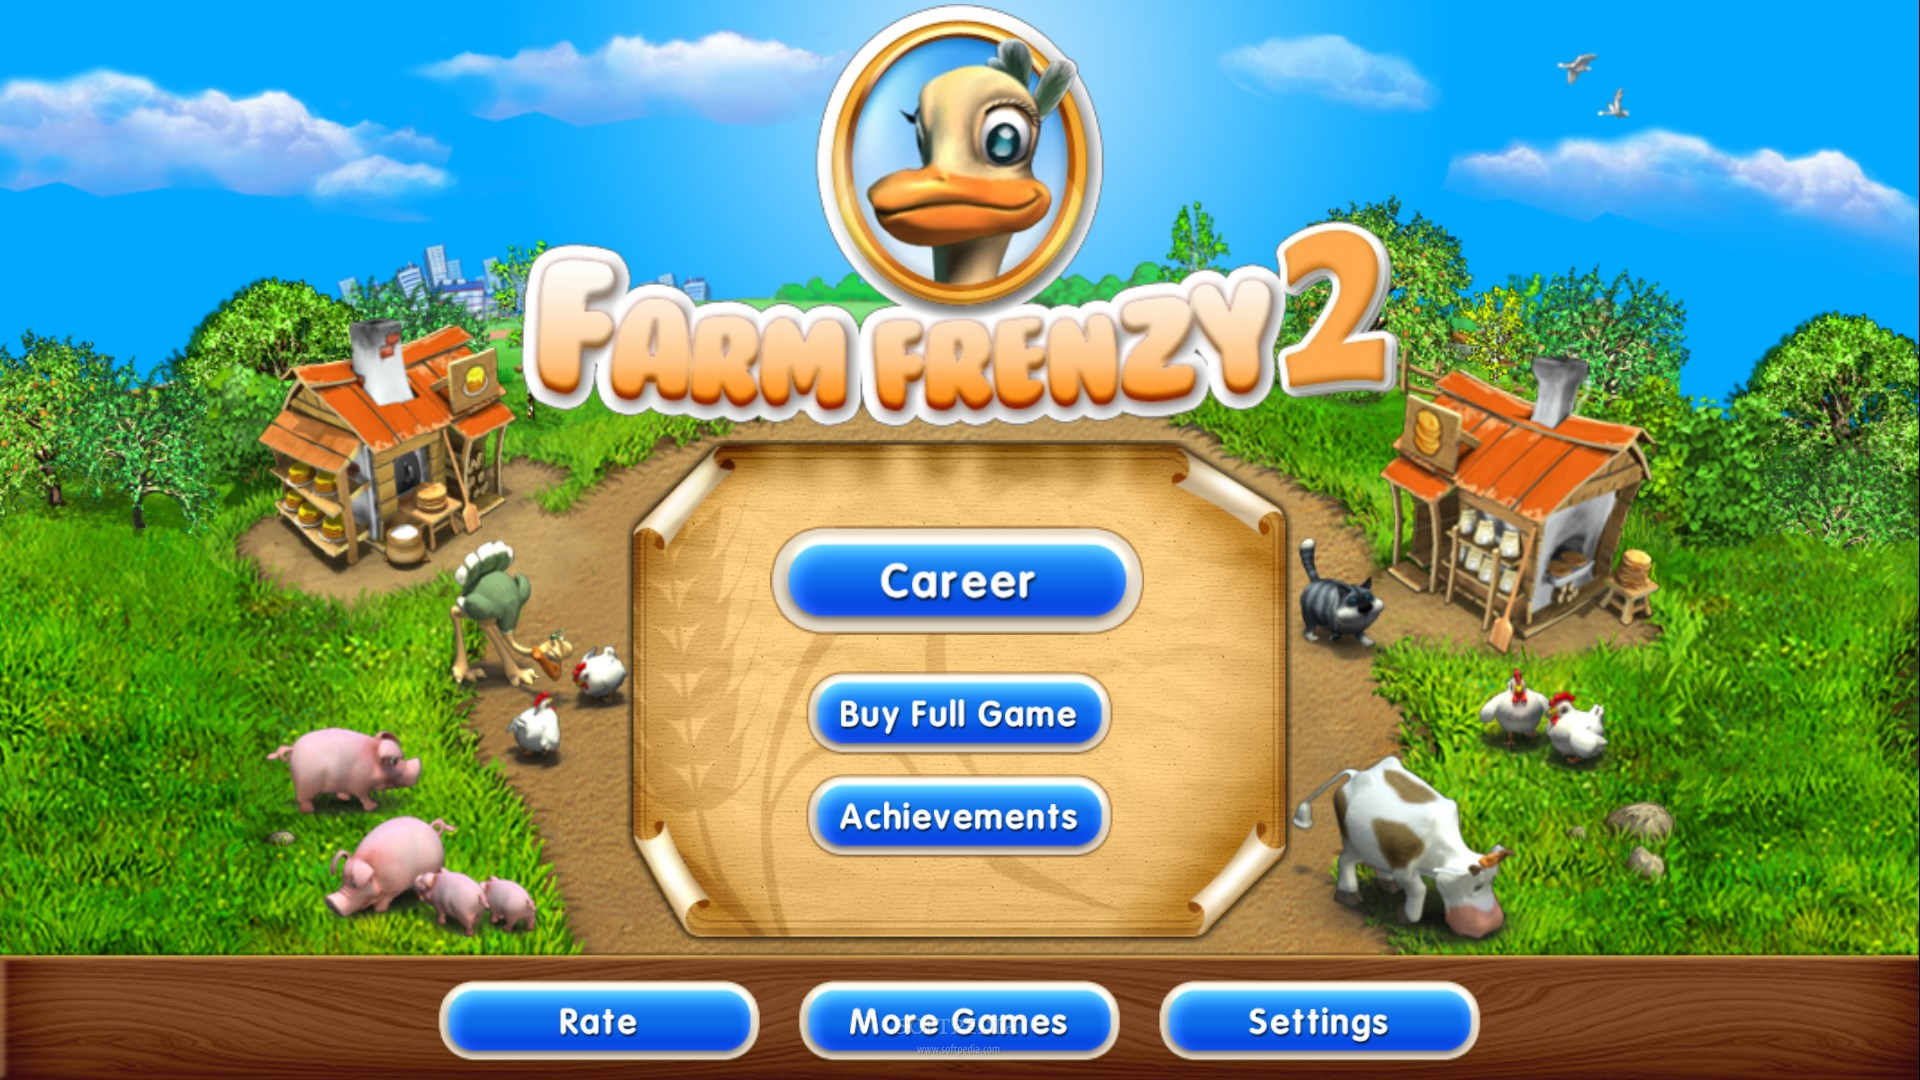 Farm frenzy 3 game free download for windows xp - buildlittle